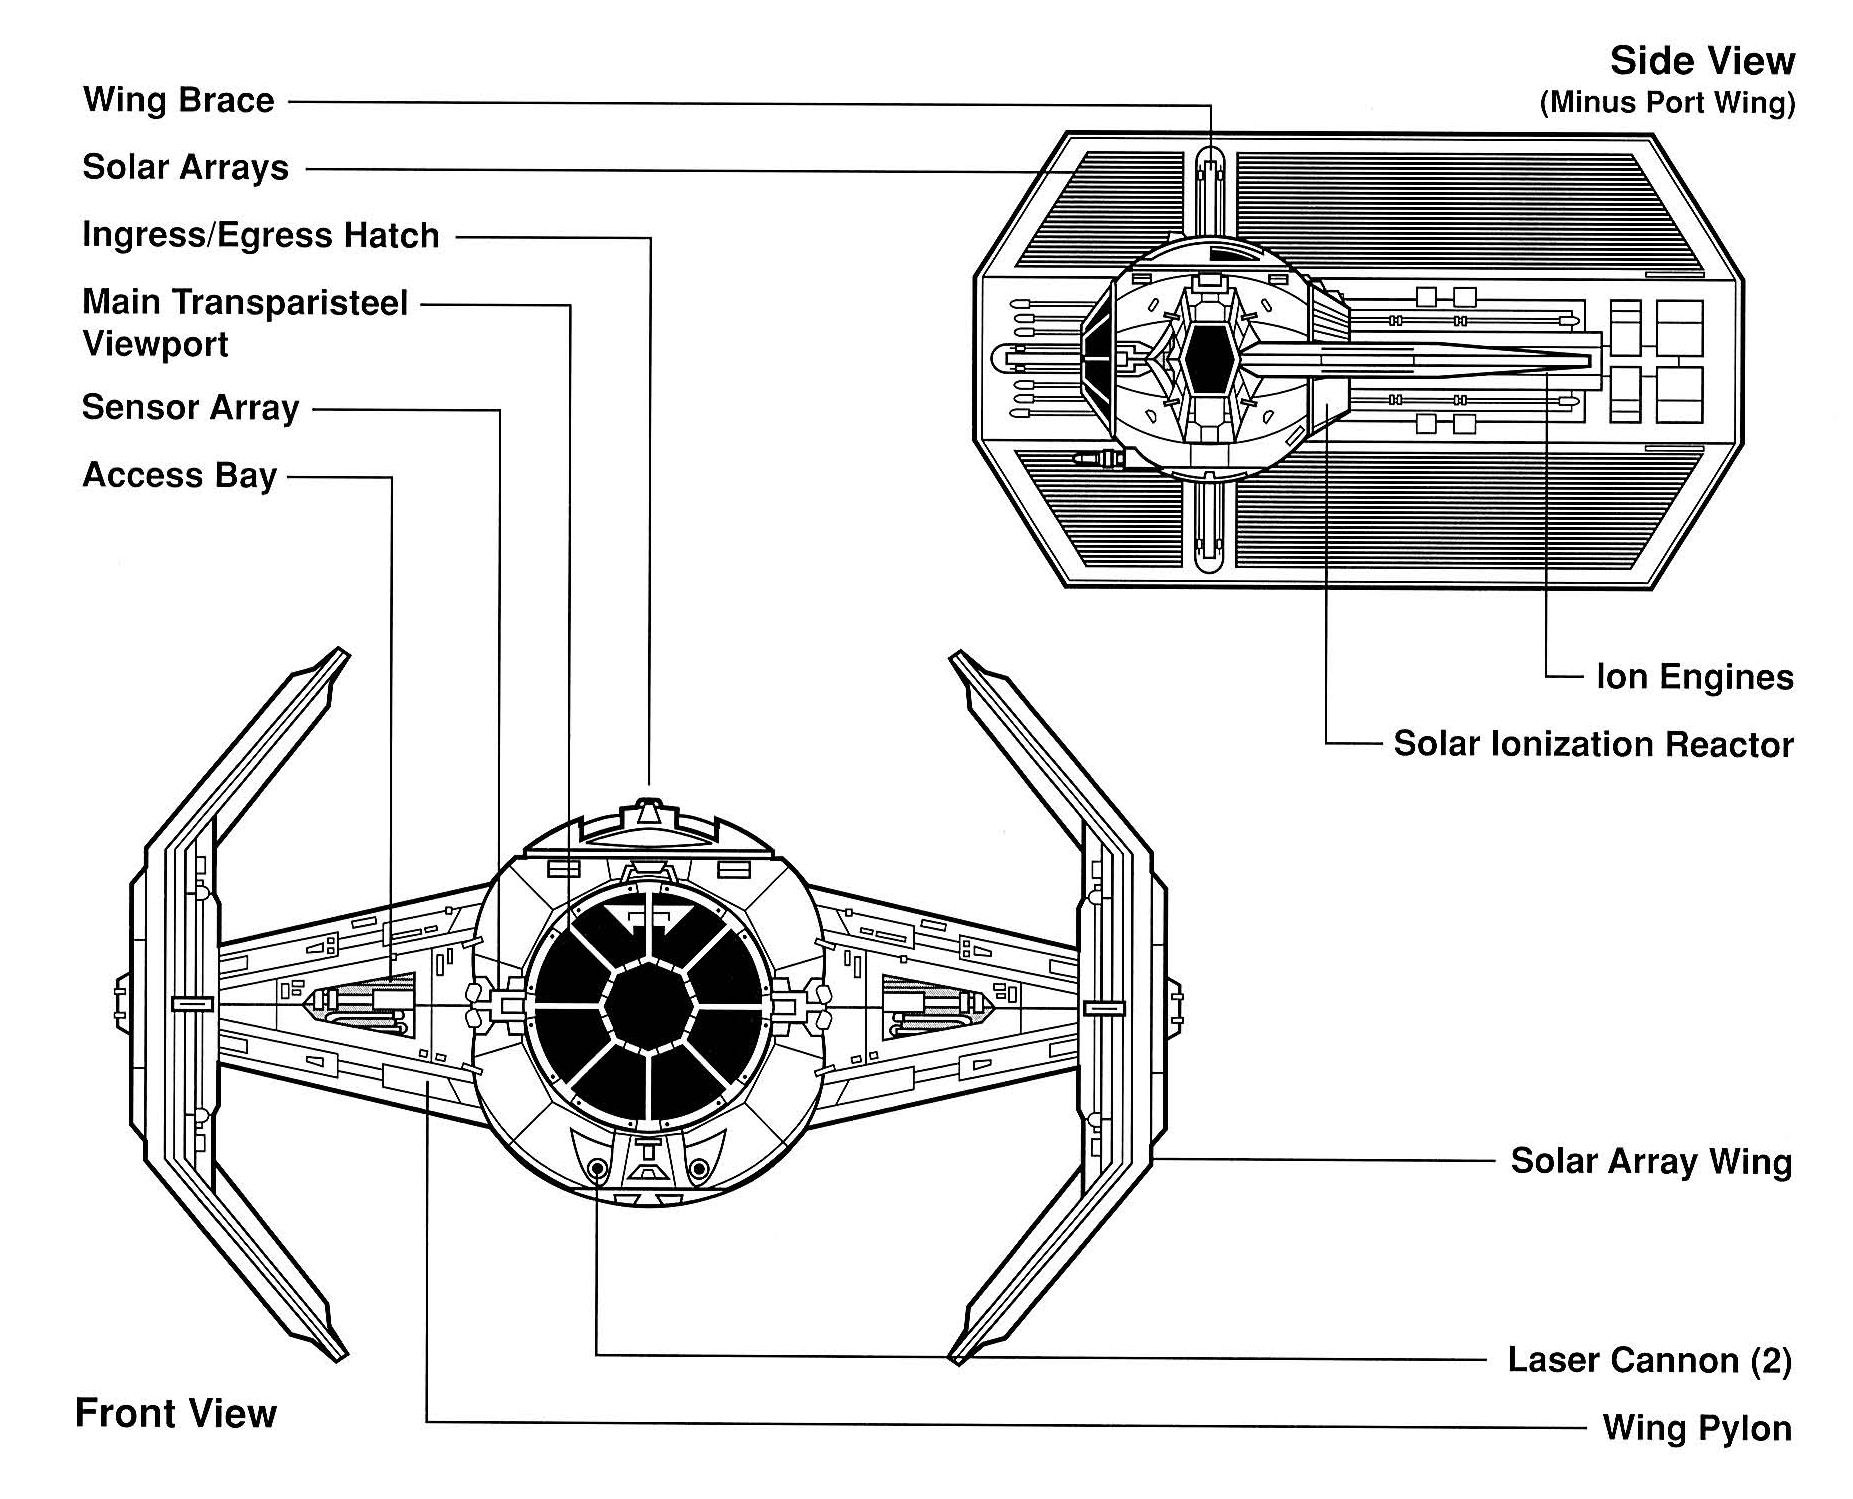 Vader's Tie Fighter Schematic | My Style | Pinterest | Star ... on tie advanced, tie phantom, y-wing schematic,